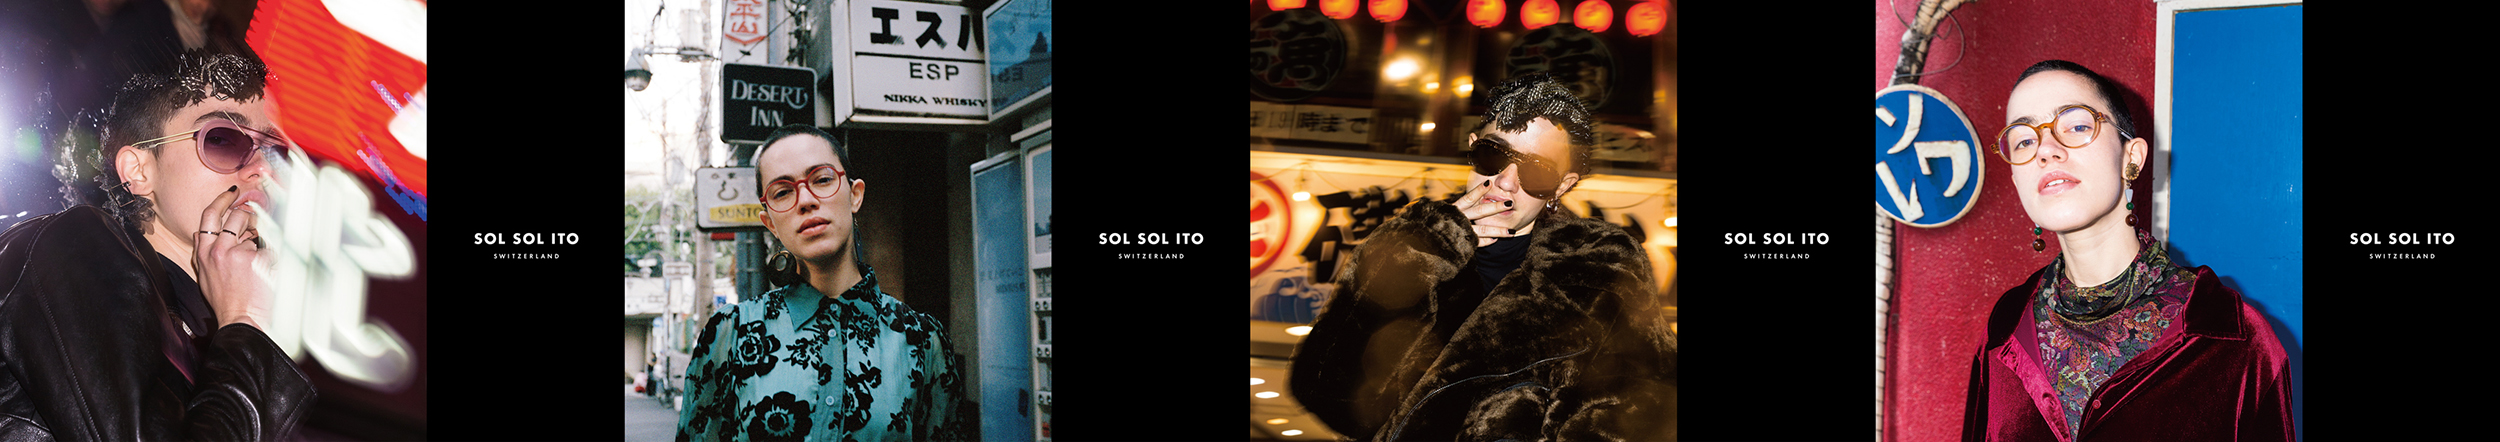 SOL SOL ITO eyewear catalogue 2018